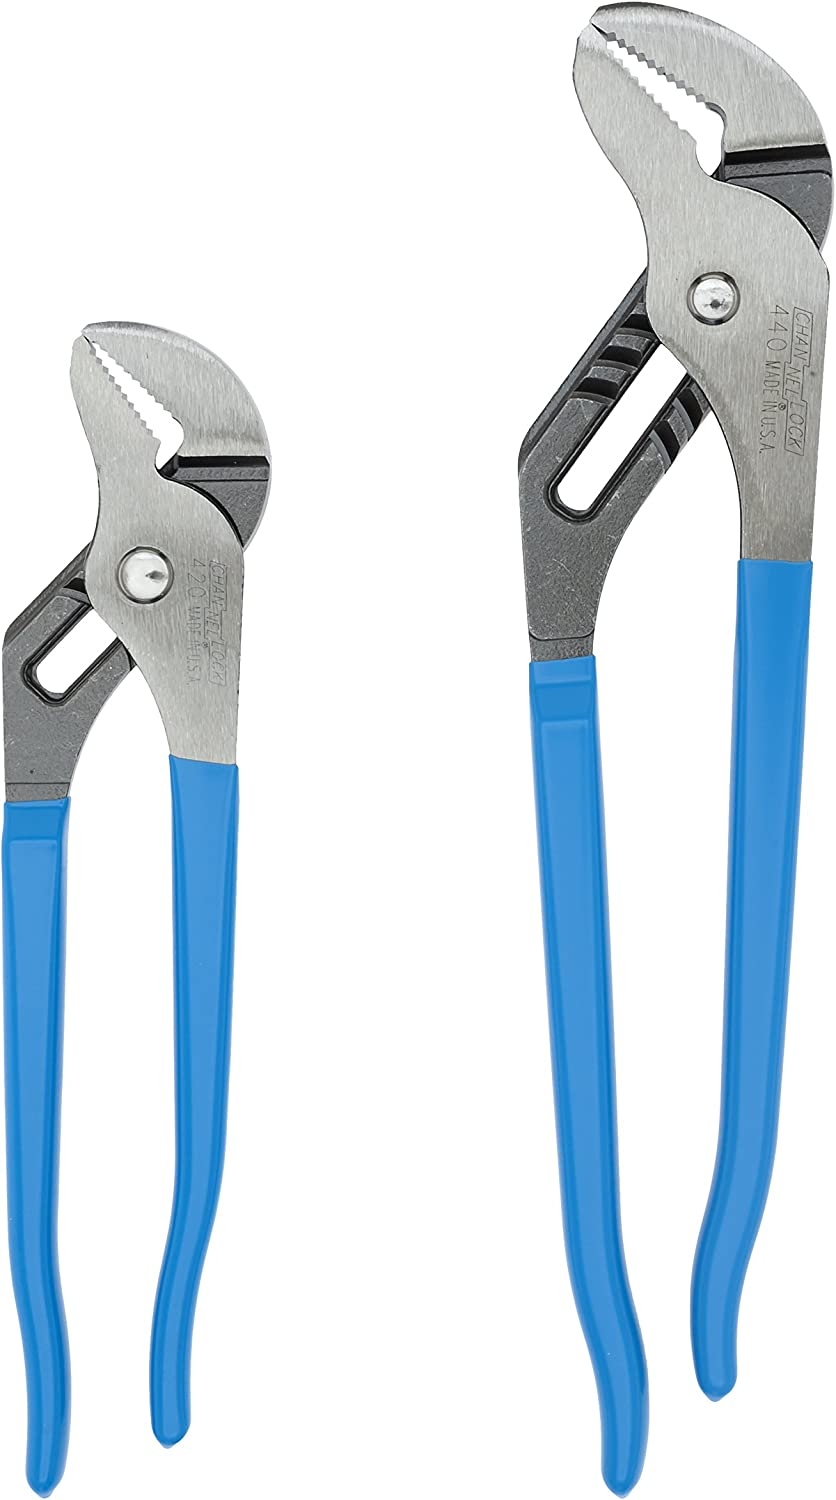 Channellock TG-1 2 Piece 9-1/2-Inch and 12-Inch Tongue and Groove Plier Gift Set